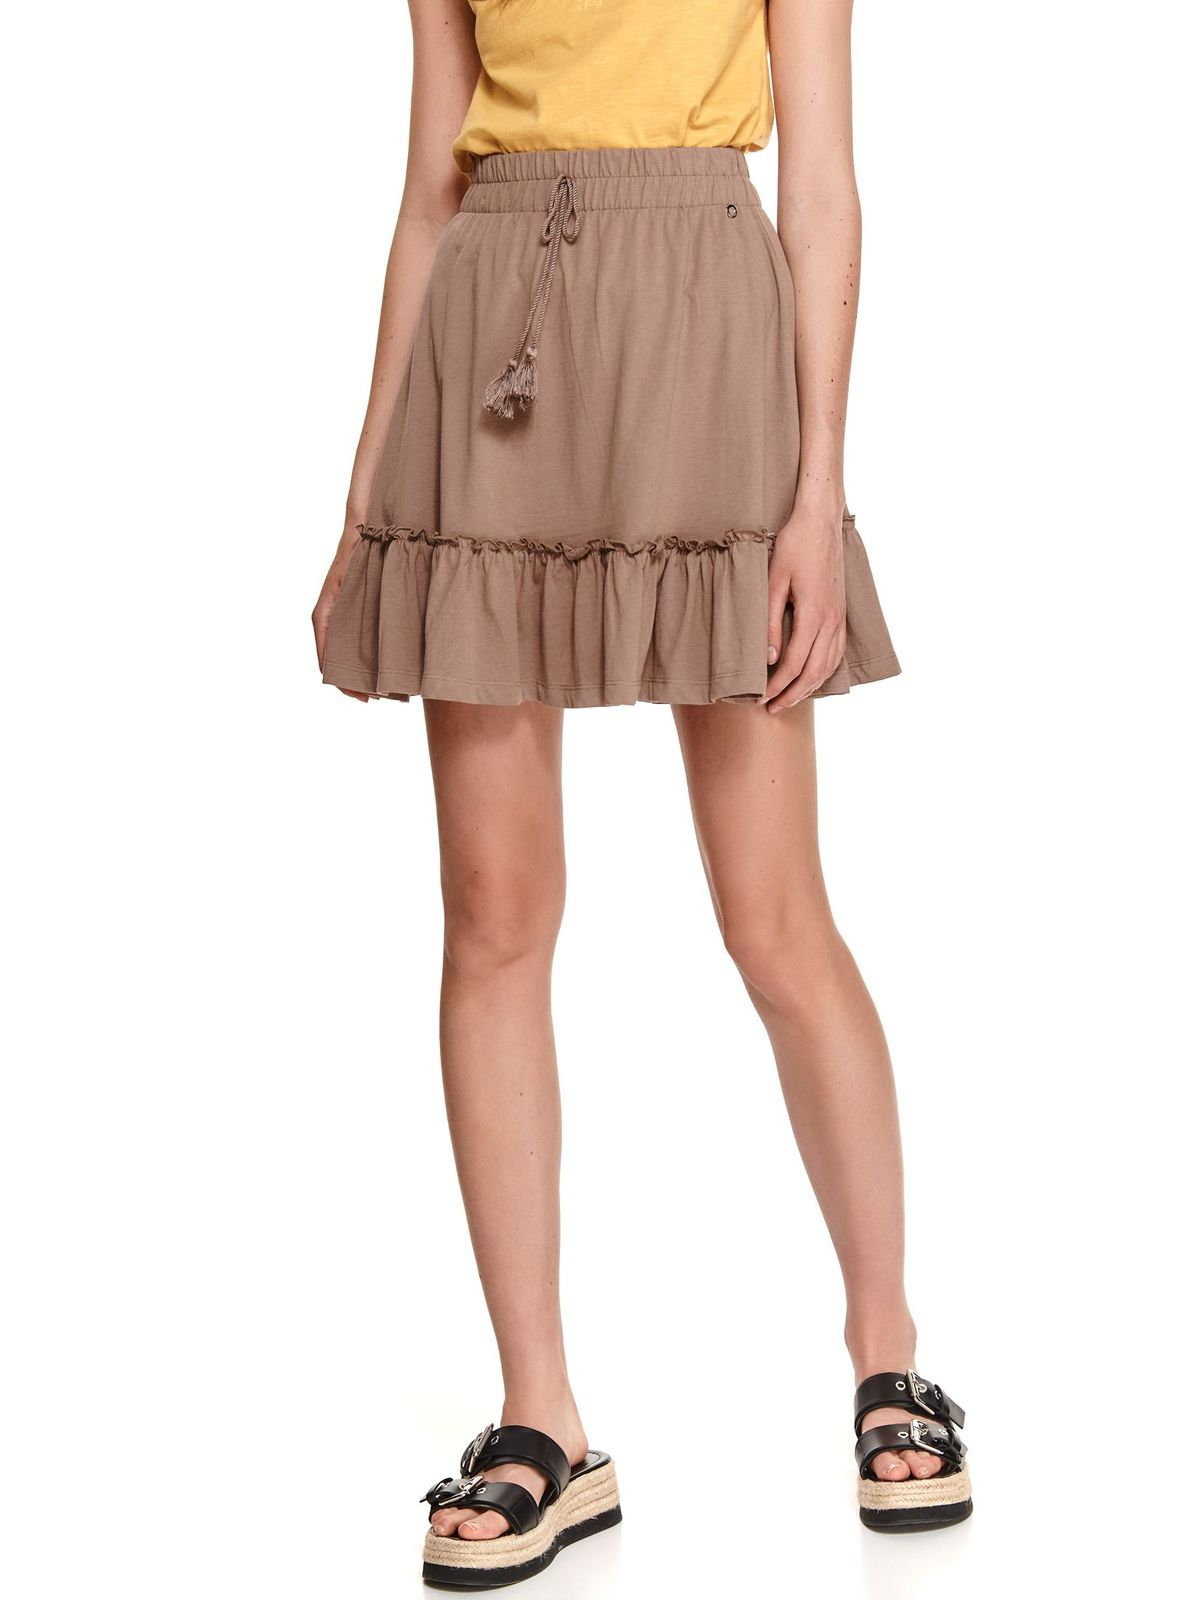 Peach skirt cotton cloche with elastic waist with ruffle details